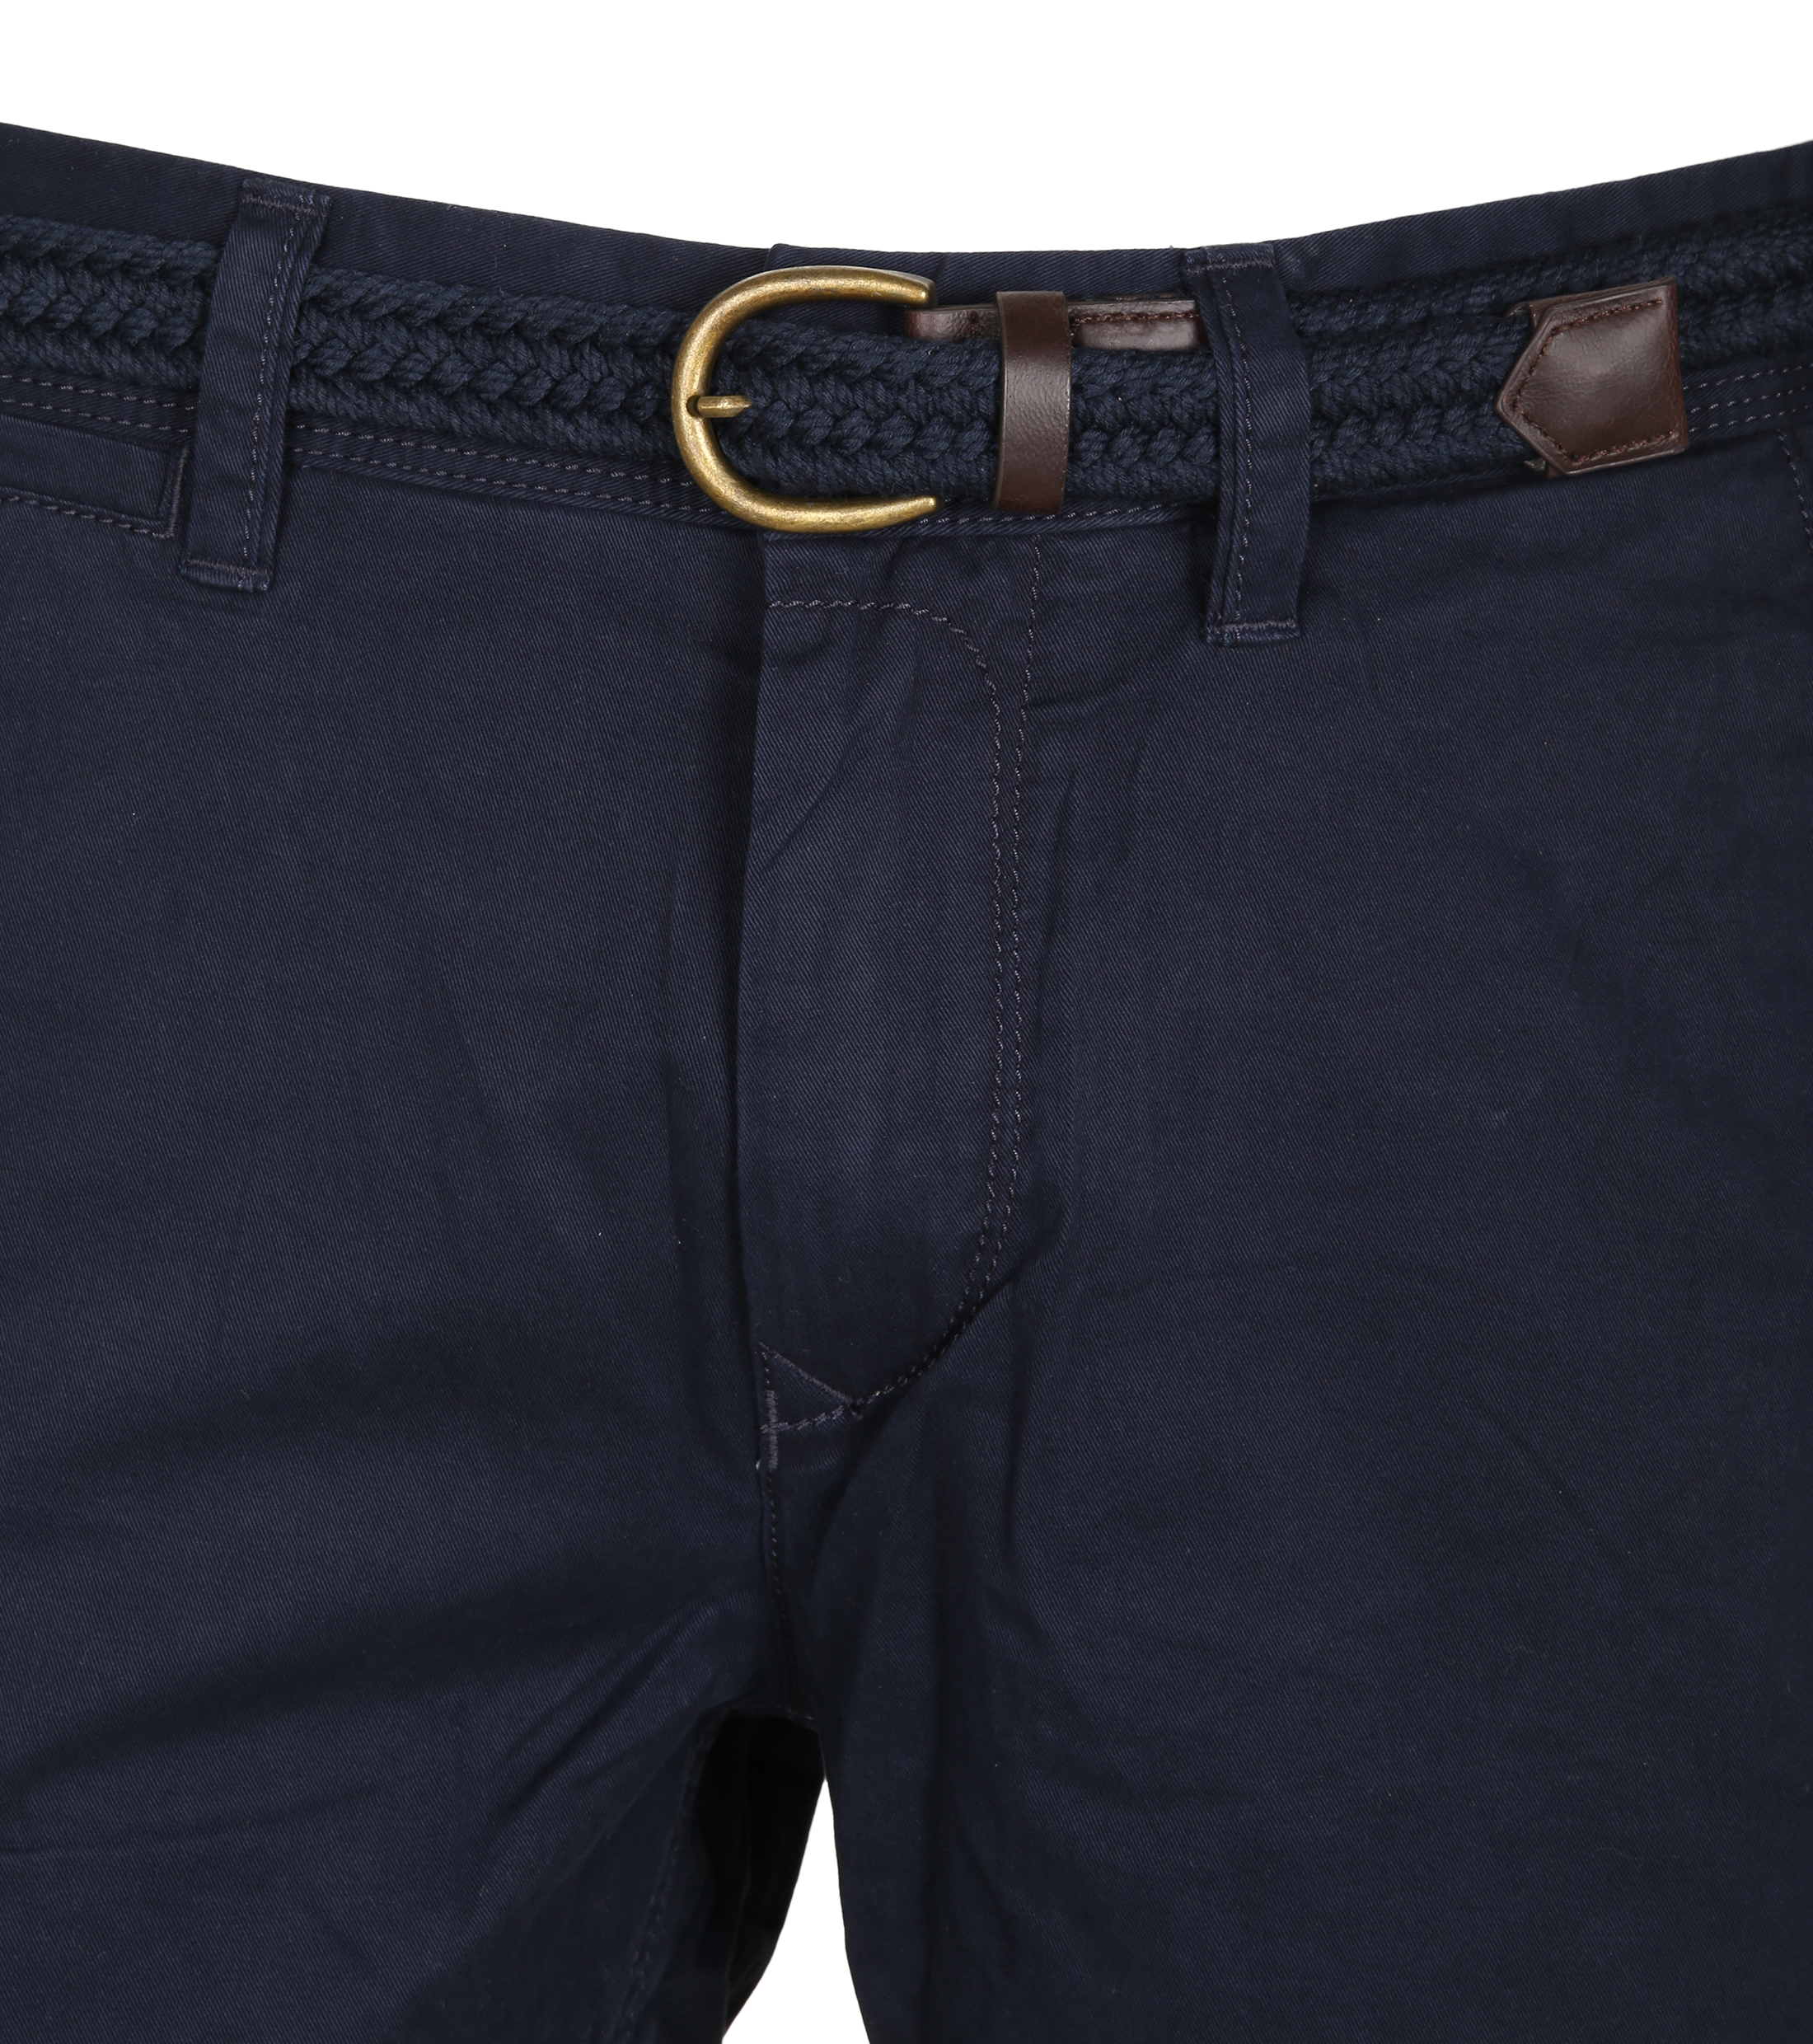 Vanguard Korte Broek Twill Navy foto 1